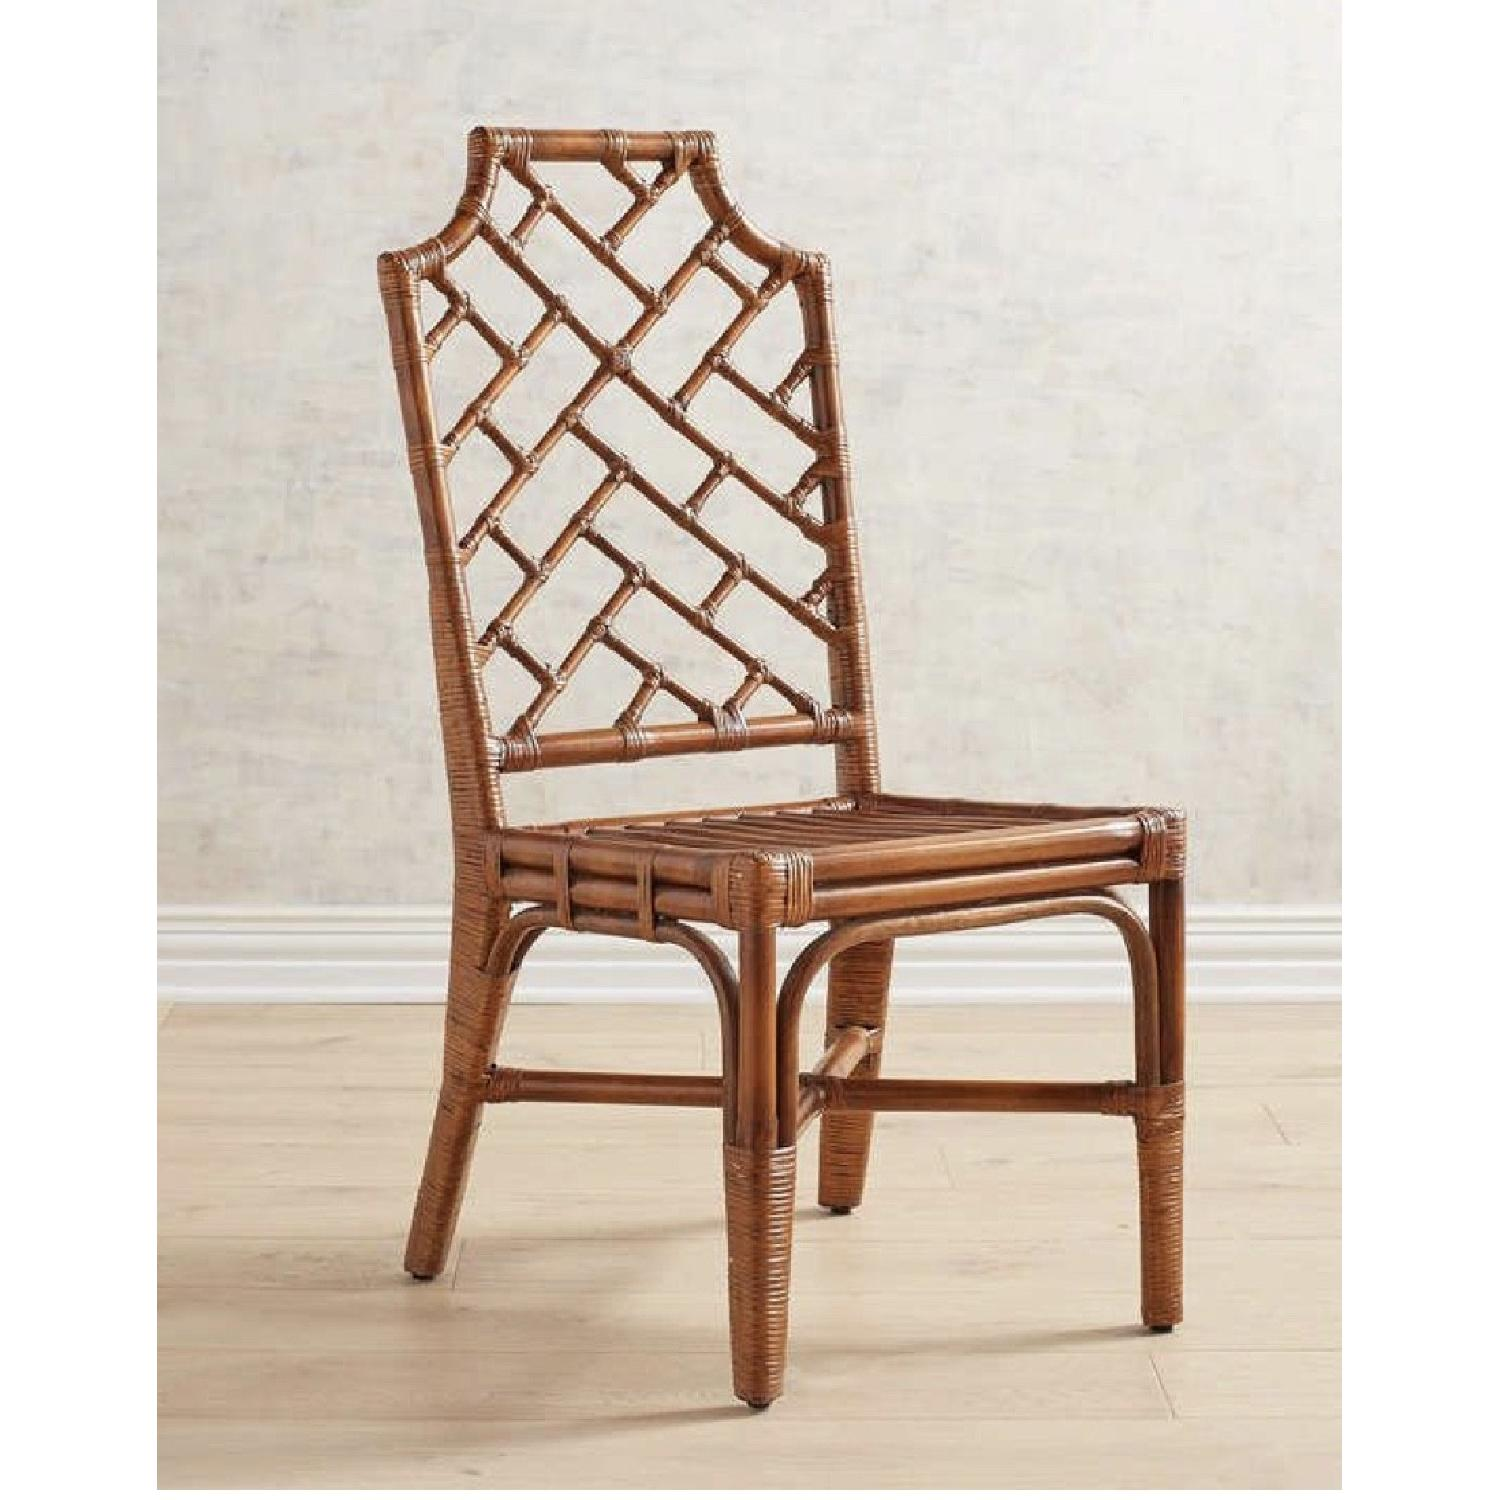 Pier 1 Rattan Dining Chairs - image-1